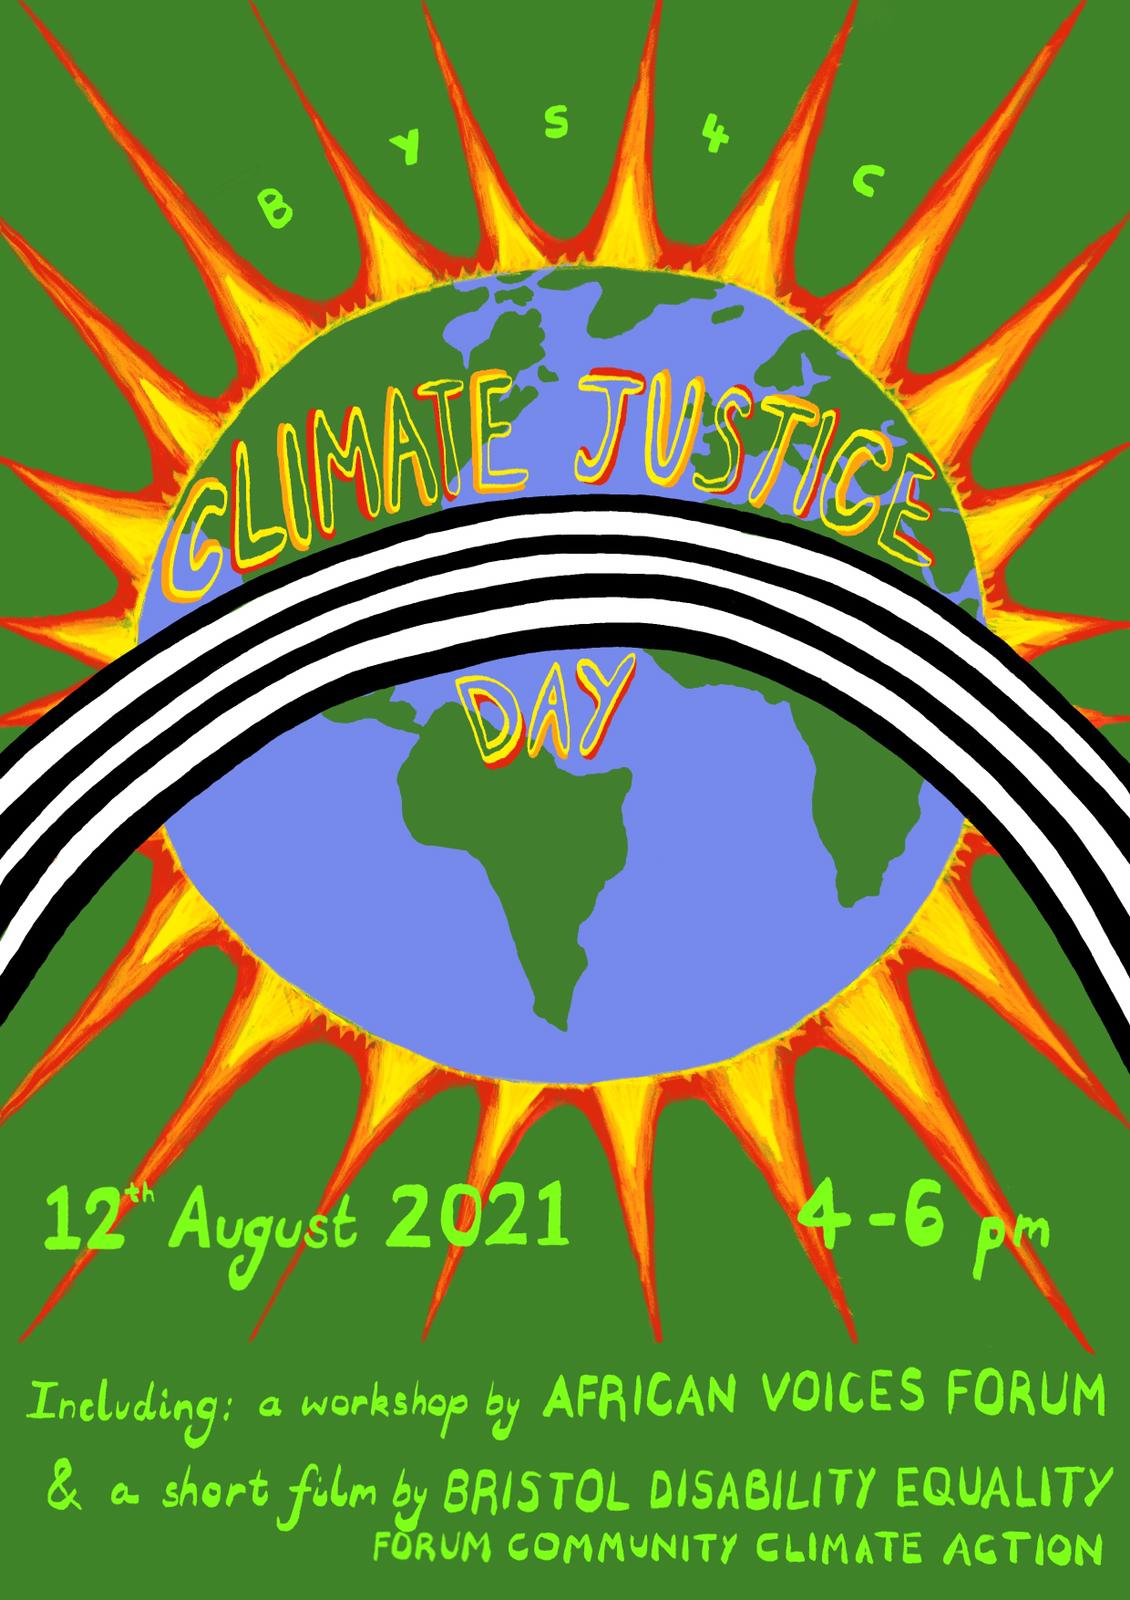 """Poster has a green background with an earth image in the centre. A black and white rainbow stretches across the earth and the words """"Climate Justice Day"""" are written along the rainbow."""